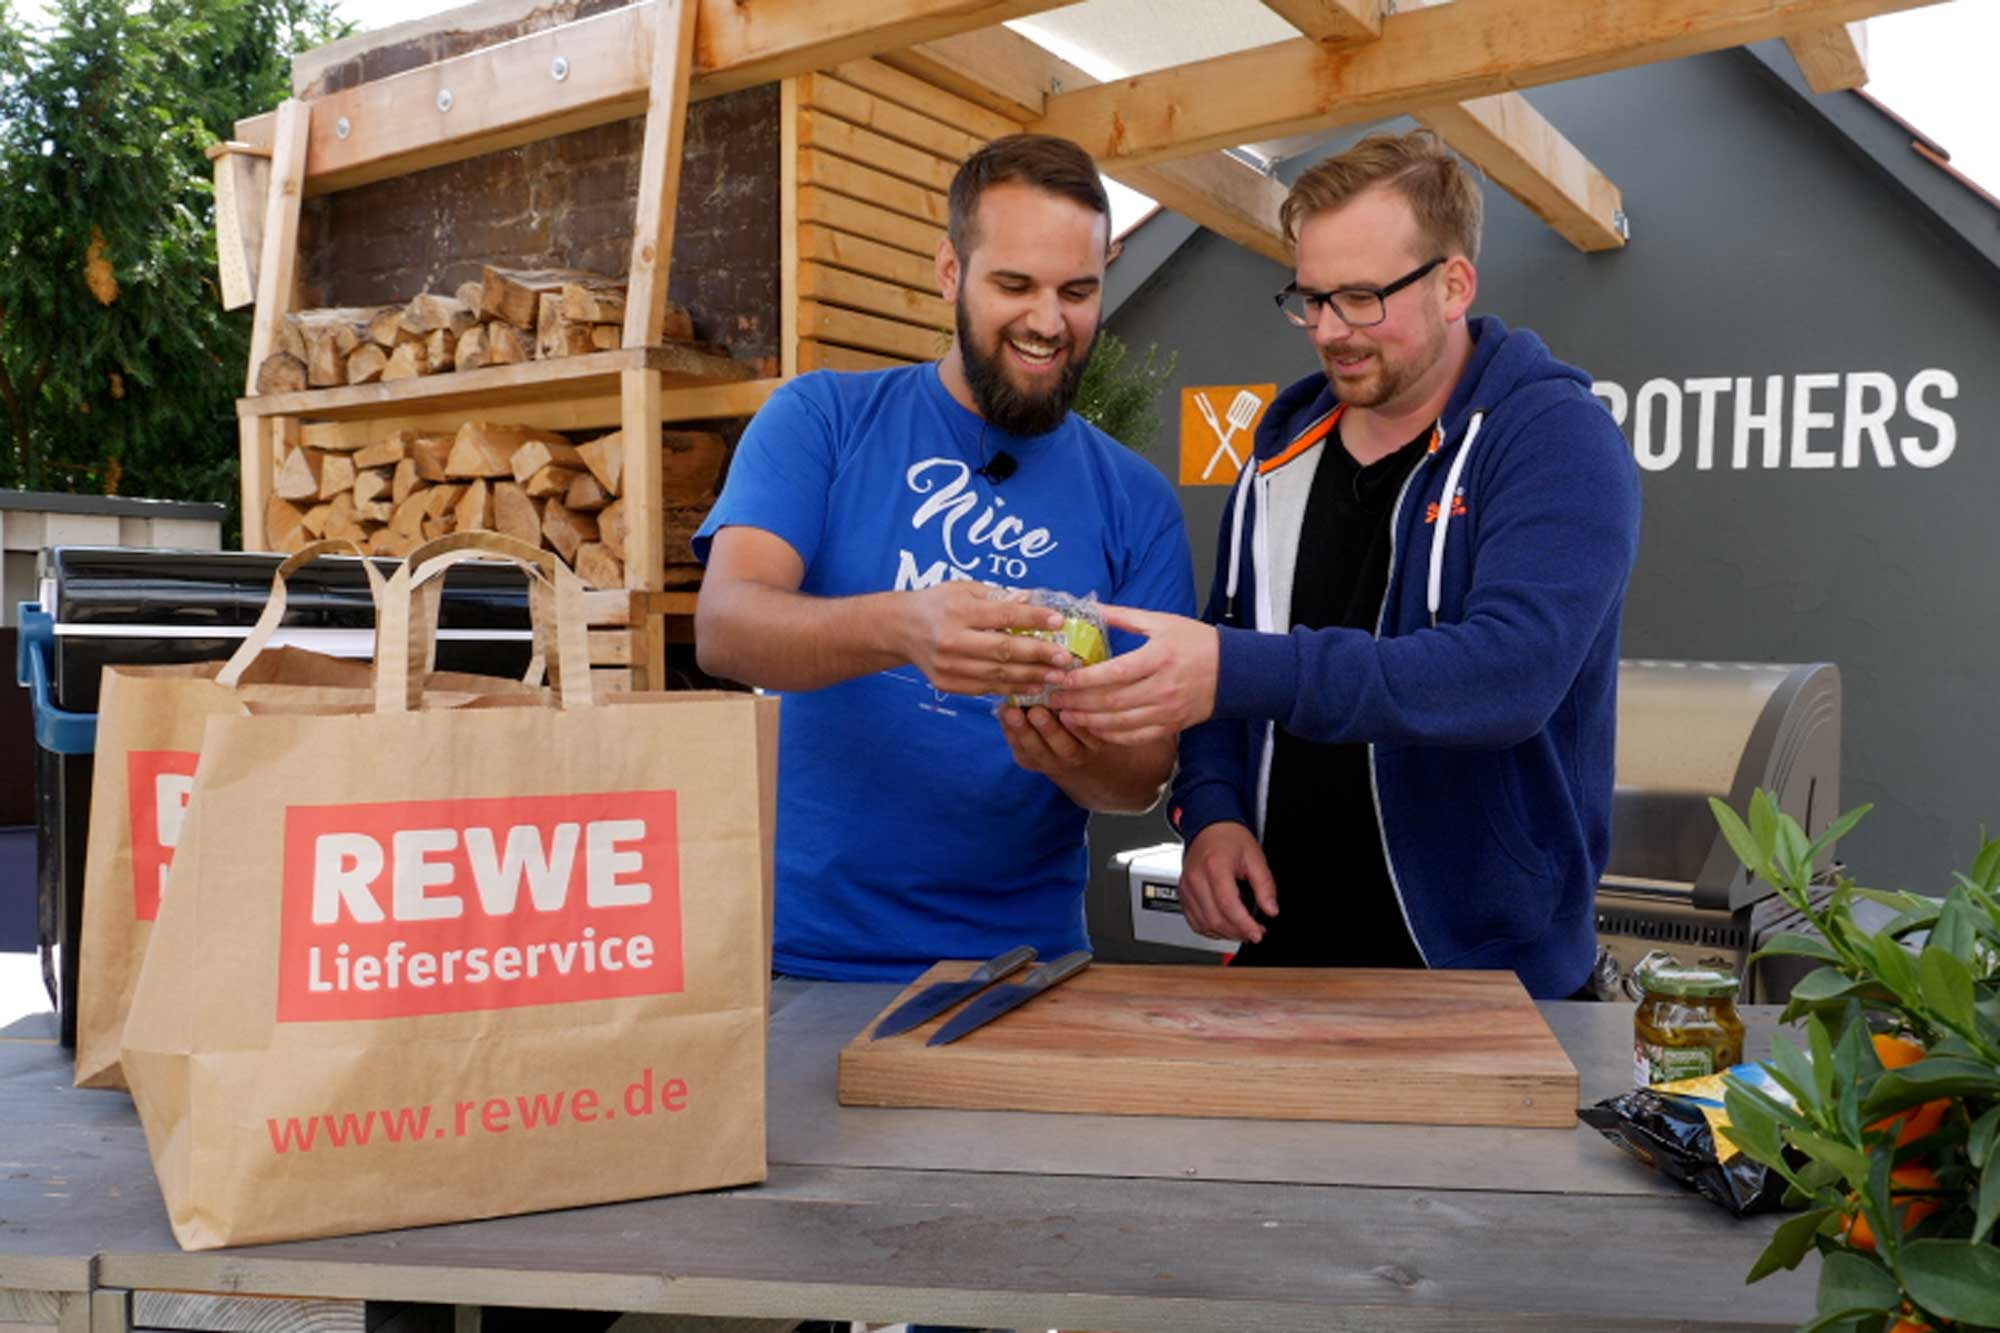 Rewe-Lieferservice - Sizzle Brothers - BBQ-Gerichte, Grill-Rezepte ...